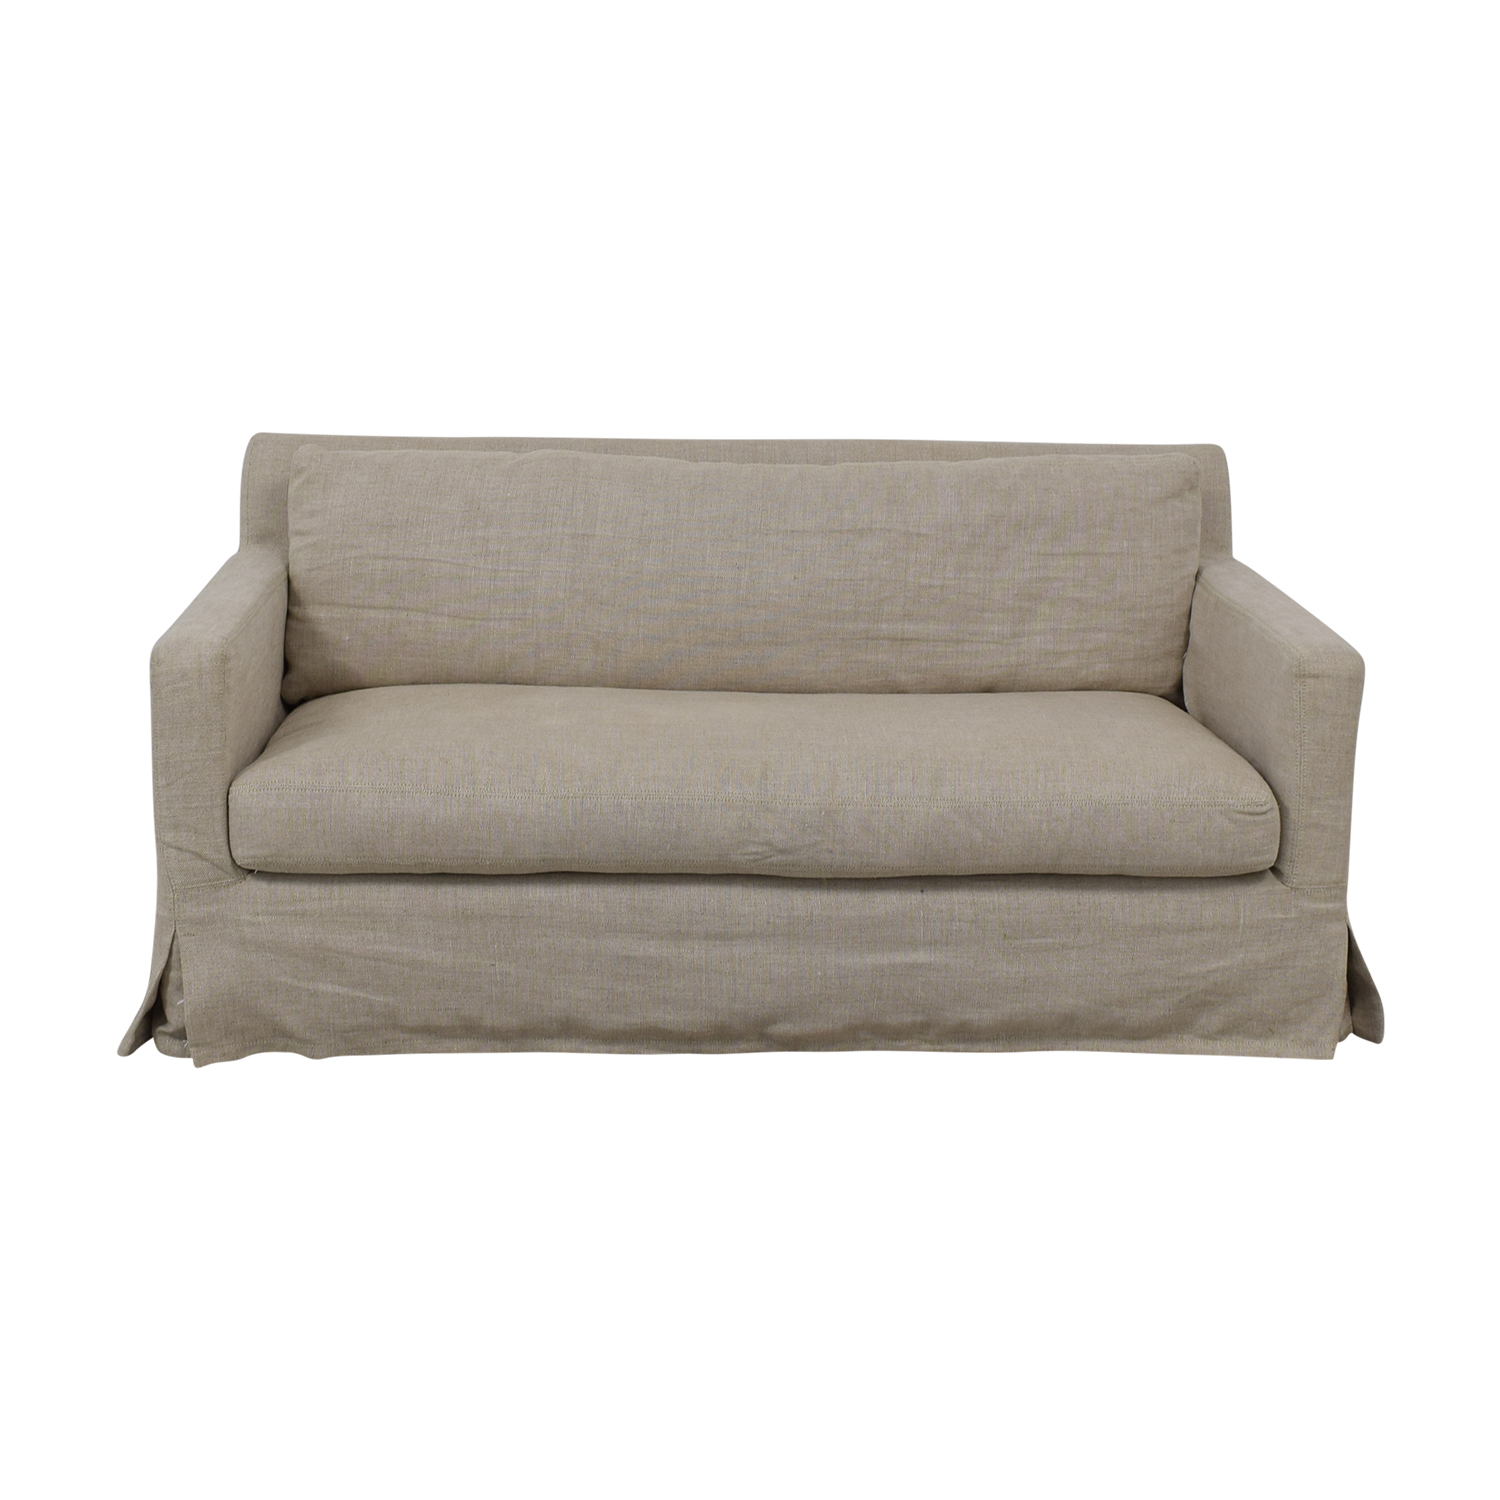 buy Restoration Hardware Petite Belgian Track Arm Slipcovered Sofa Restoration Hardware